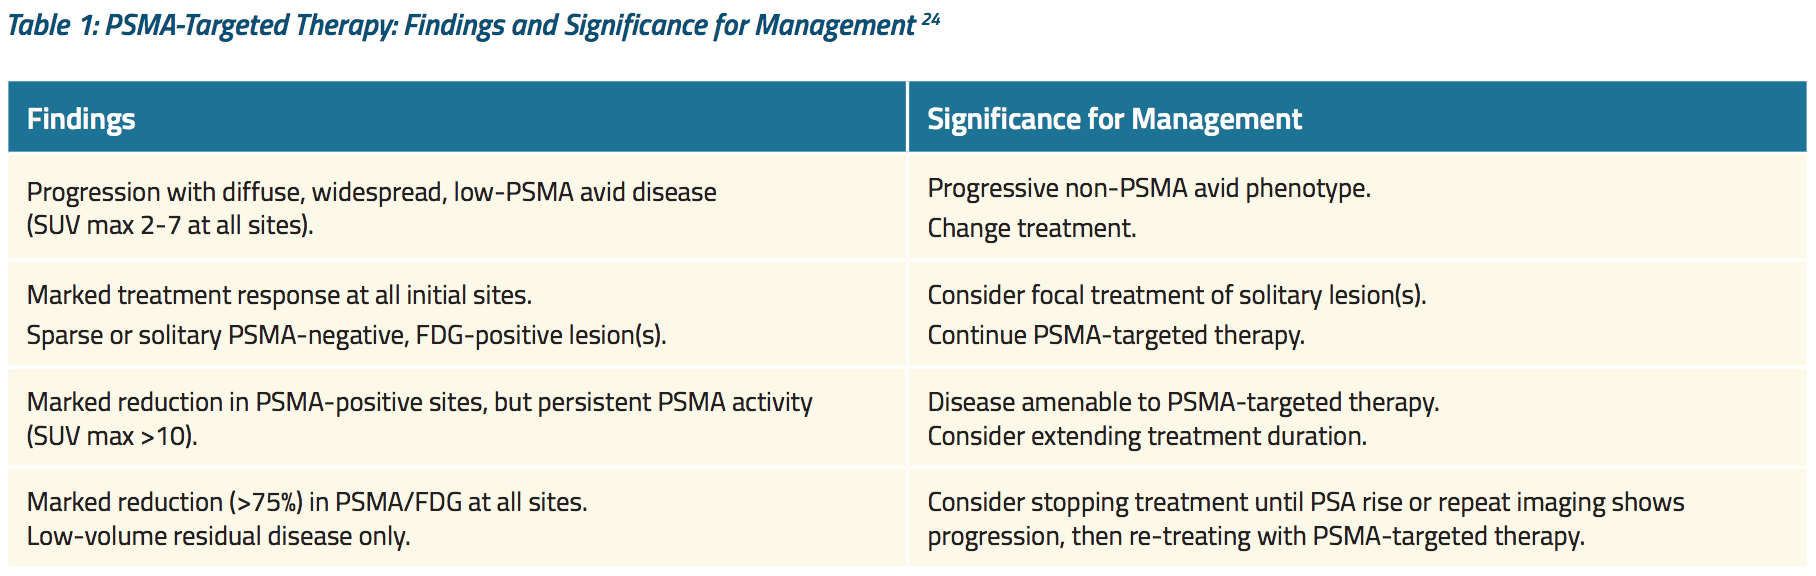 Table 1 PSMA Targeted Therapy Findings and Significance for Management